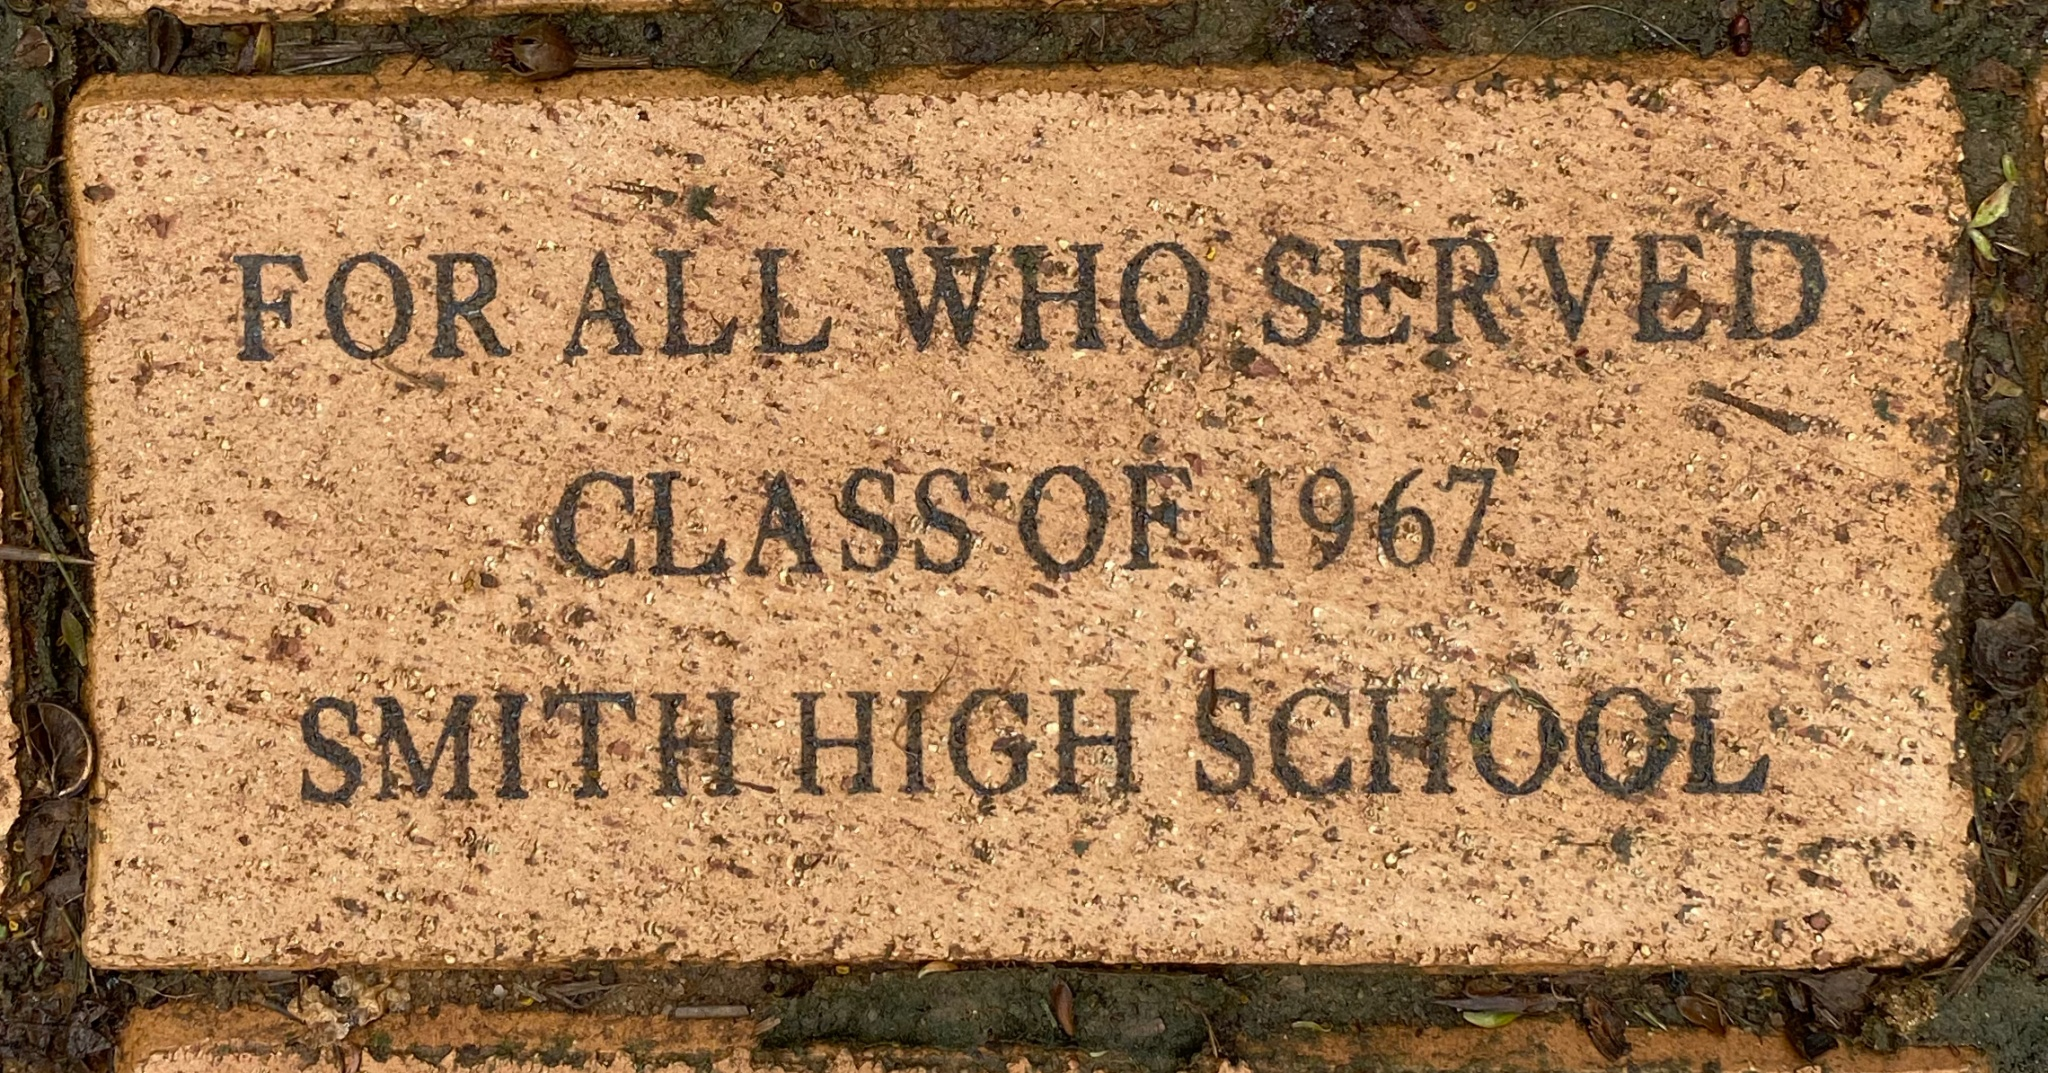 For all who served Class of 1967 Smith High School